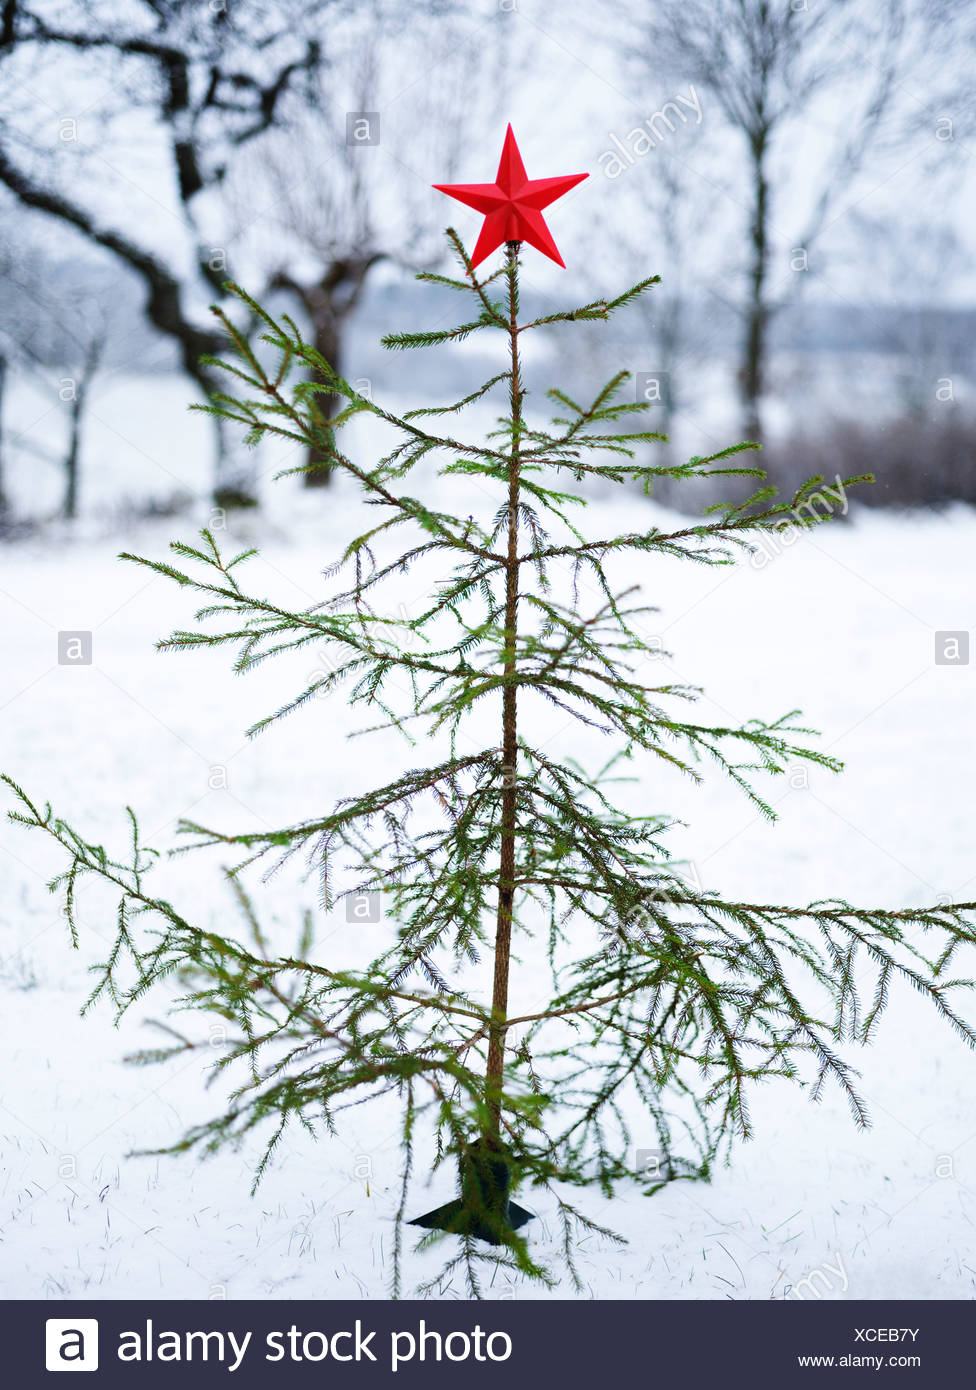 Chrstmas tree in a snow-covered forest, Sweden. - Stock Image